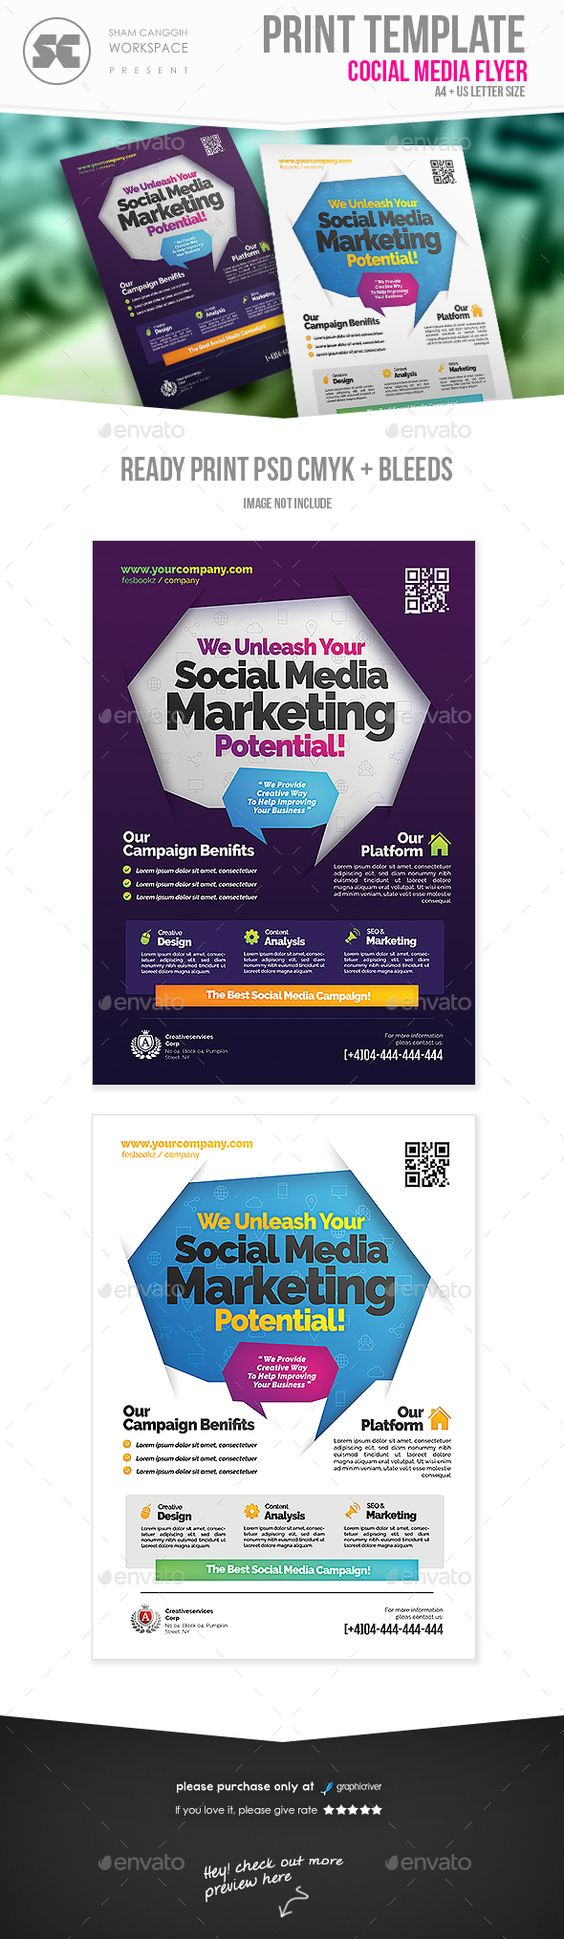 social media campaign flyer flyers flyer template buy social media campaign flyer by shamcanggih on graphicriver flyer templates designed exclusively for business agency services promotion or any of use